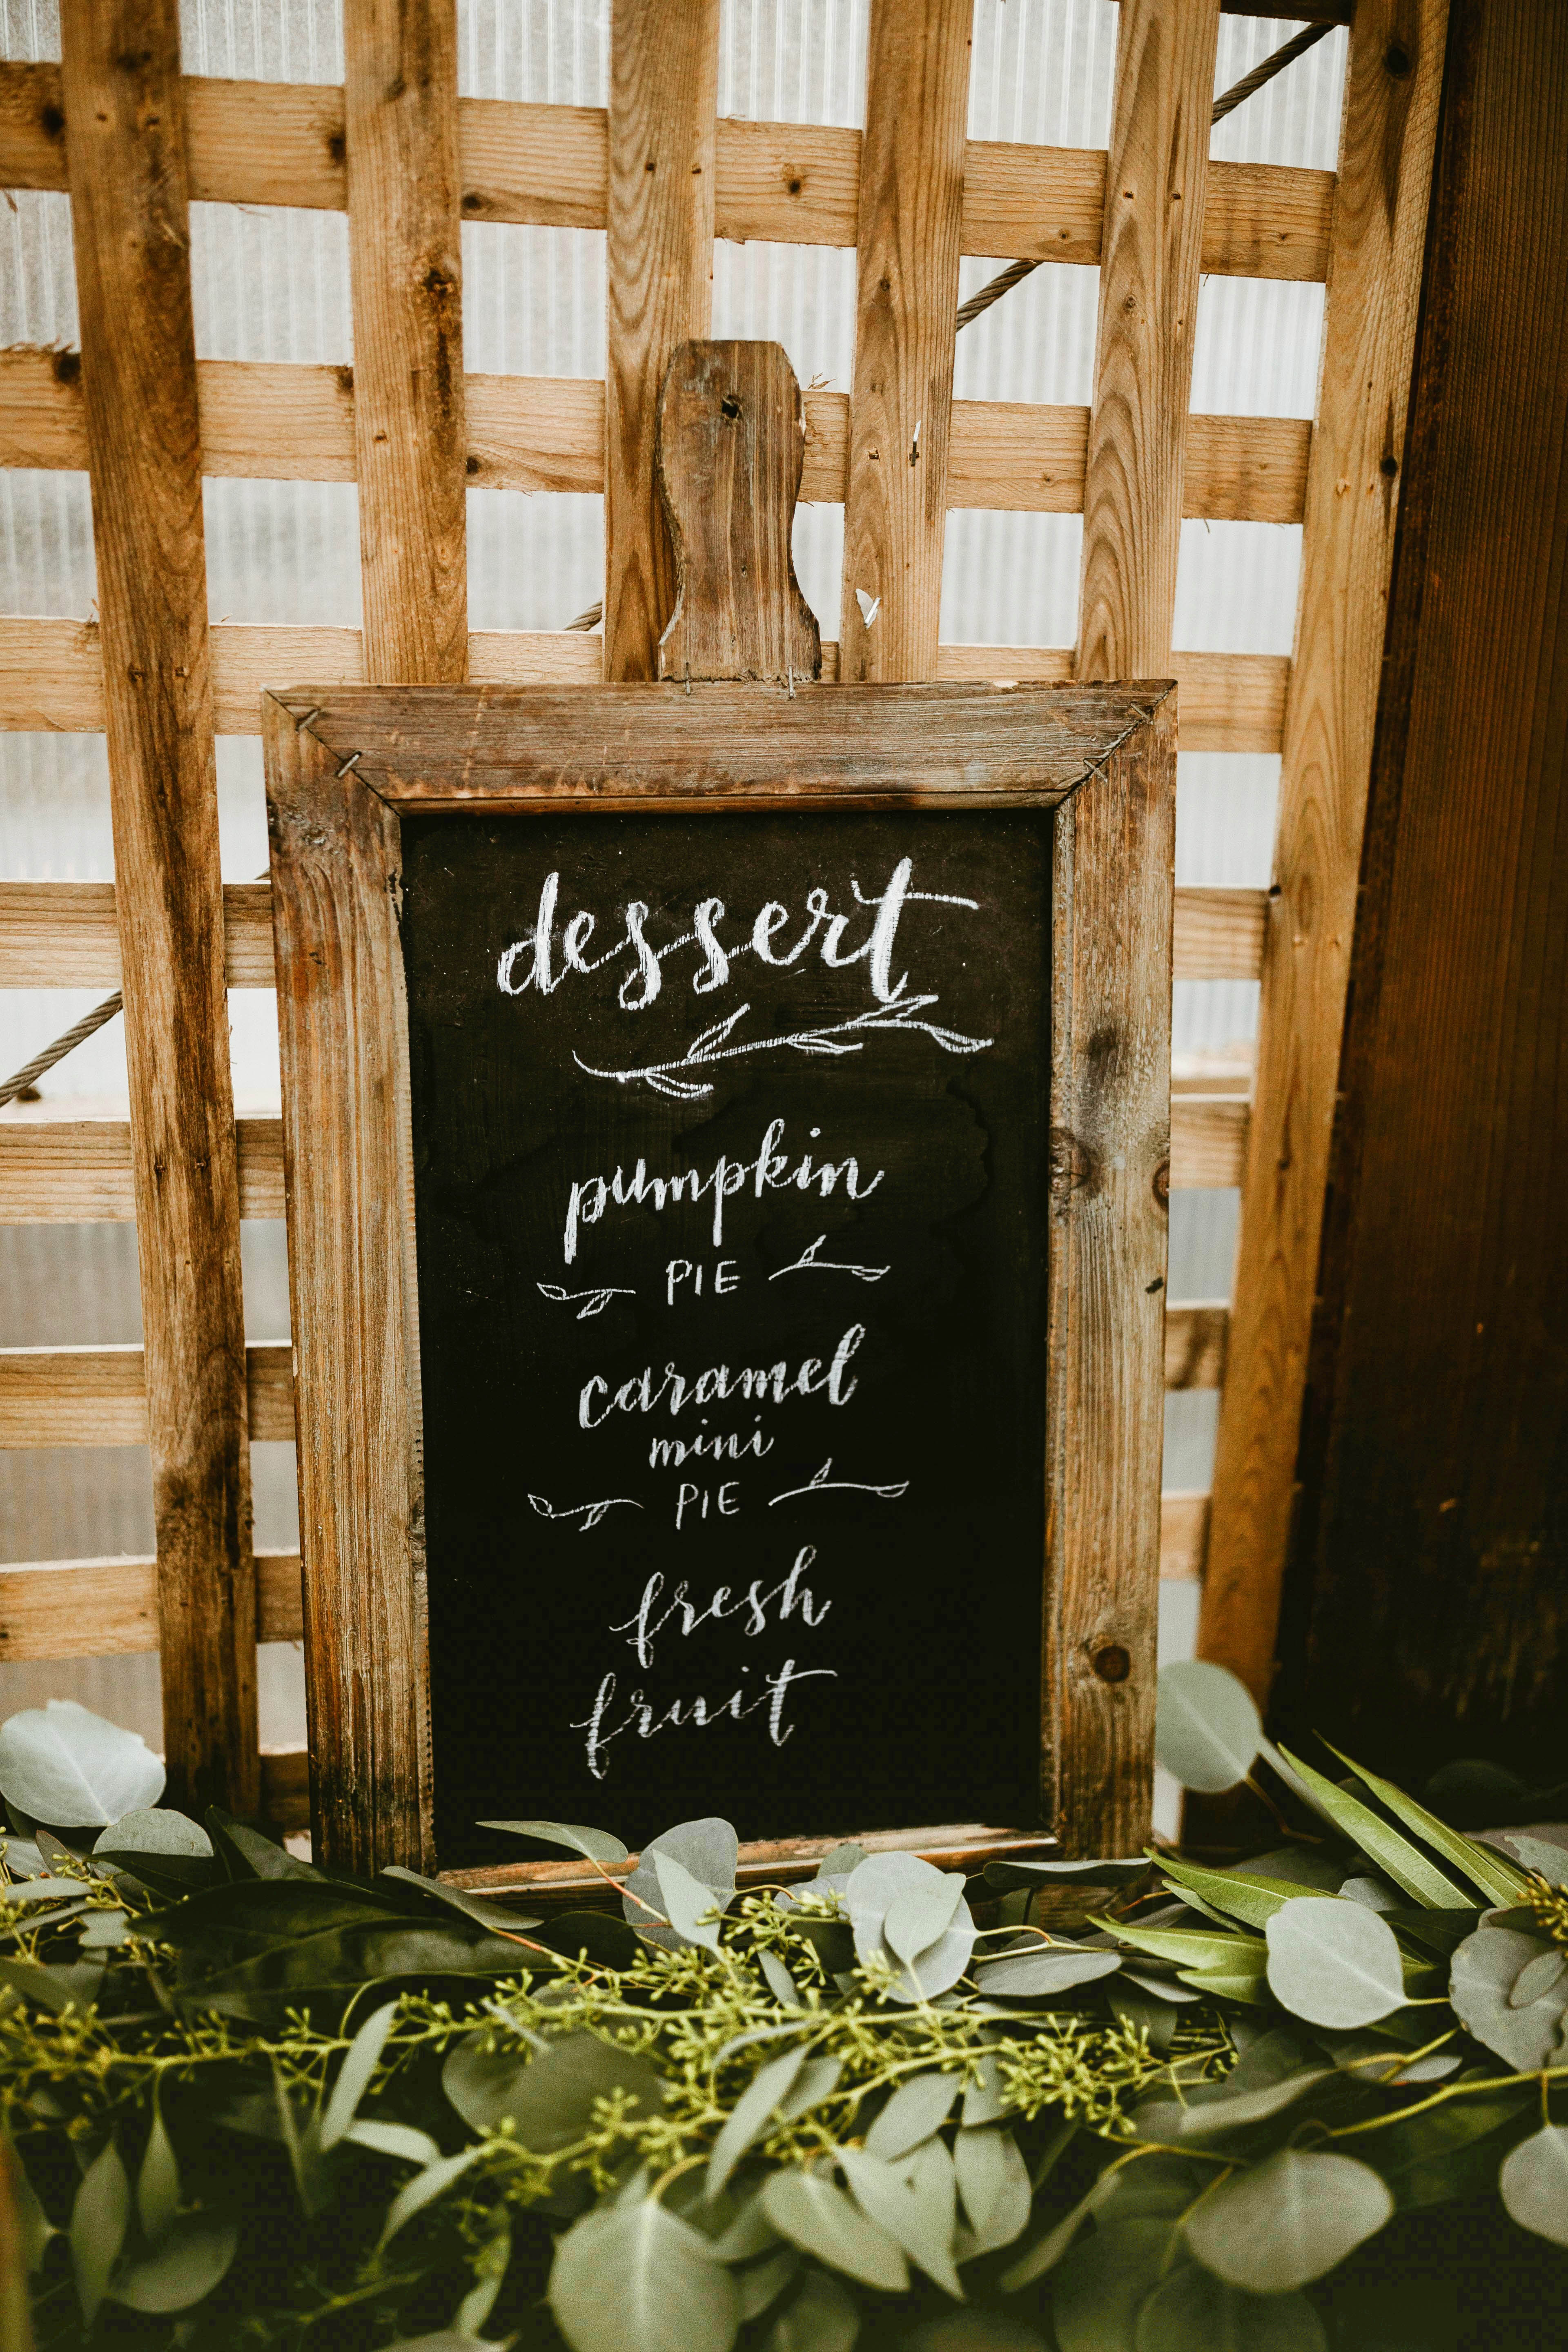 dessert menu ideas chalkboard sign greenery sketches